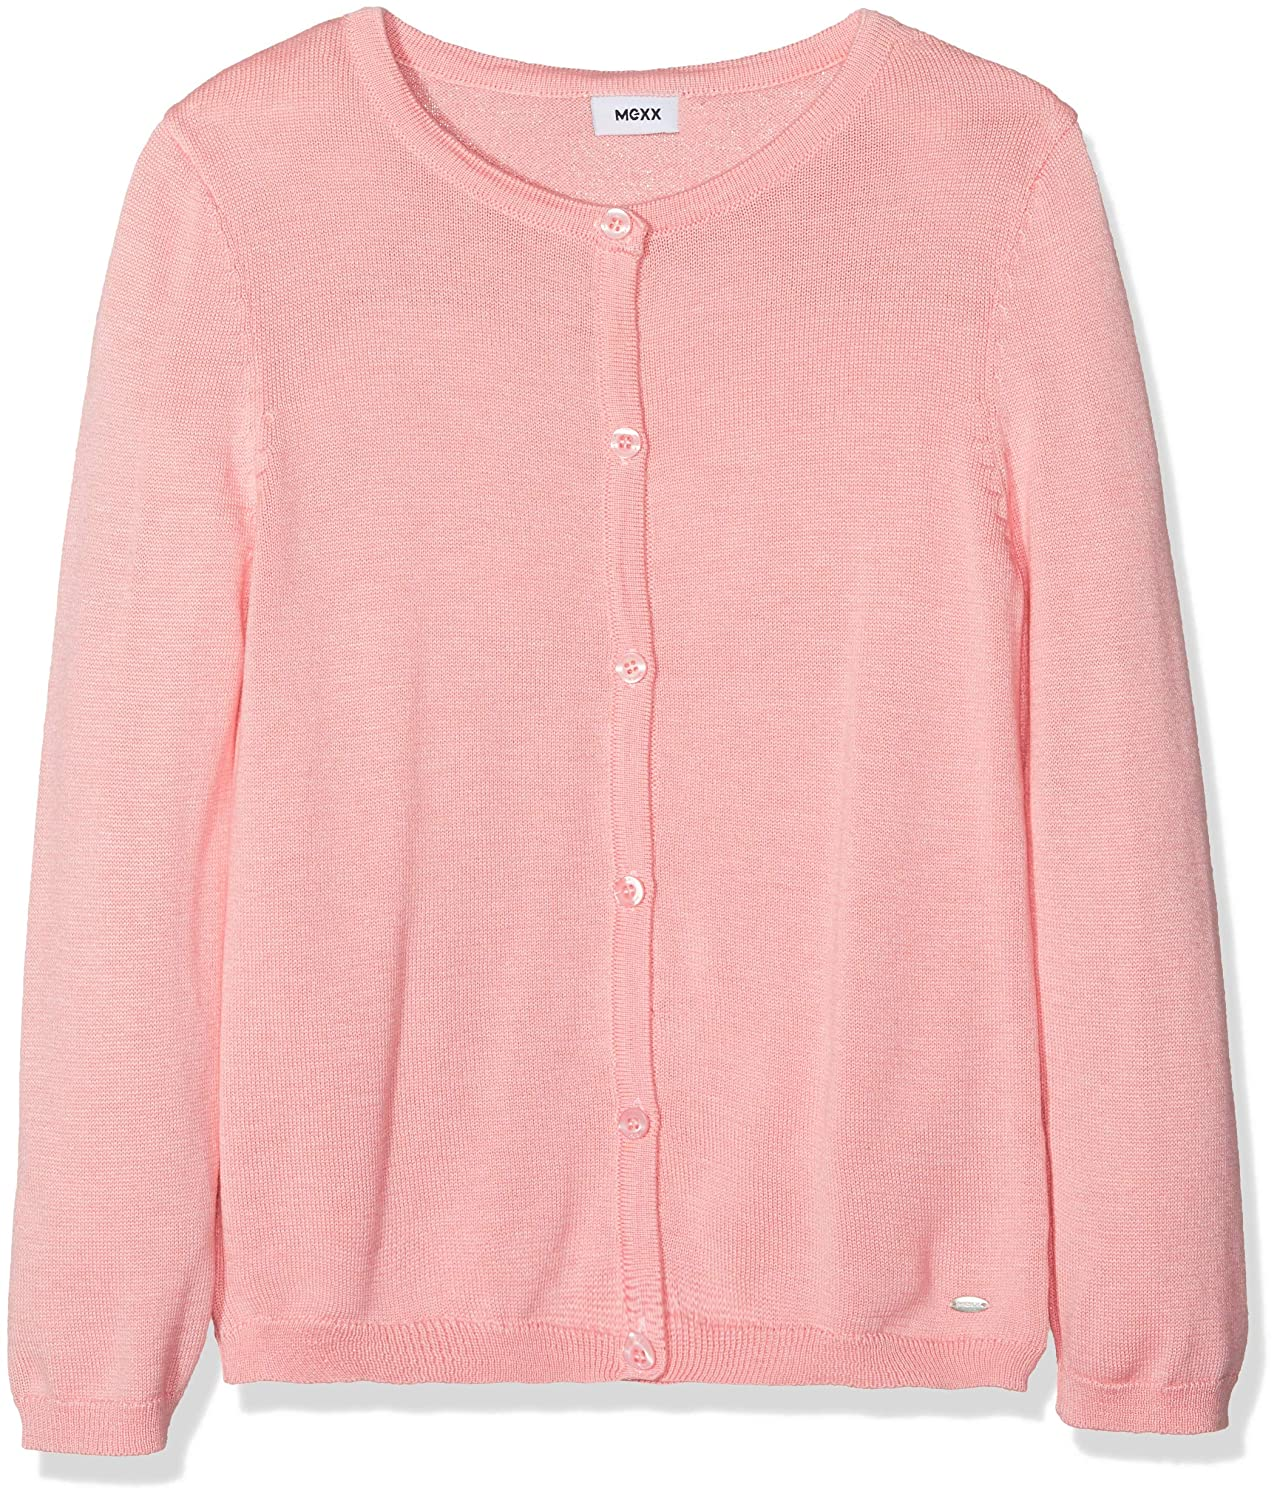 Mexx Girl's Jumper Mexx Girl' s Jumper